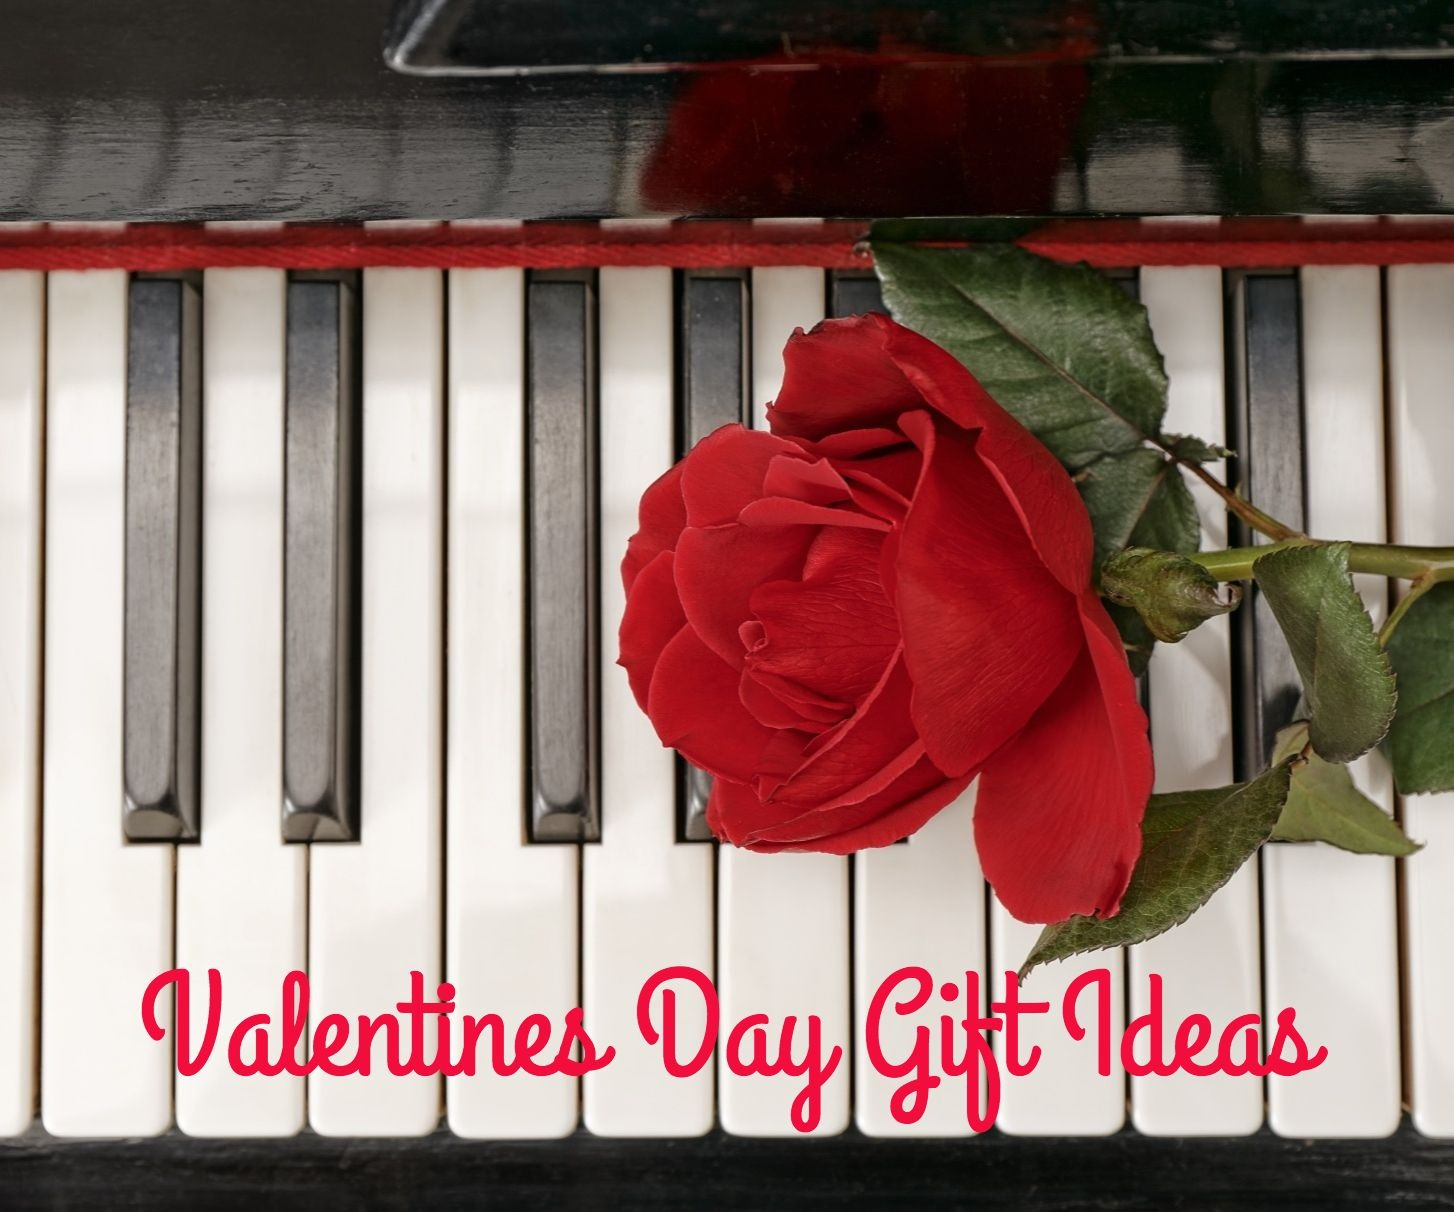 5 valentines day gift ideas muscogee moms for Valentine s day gift ideas for mom